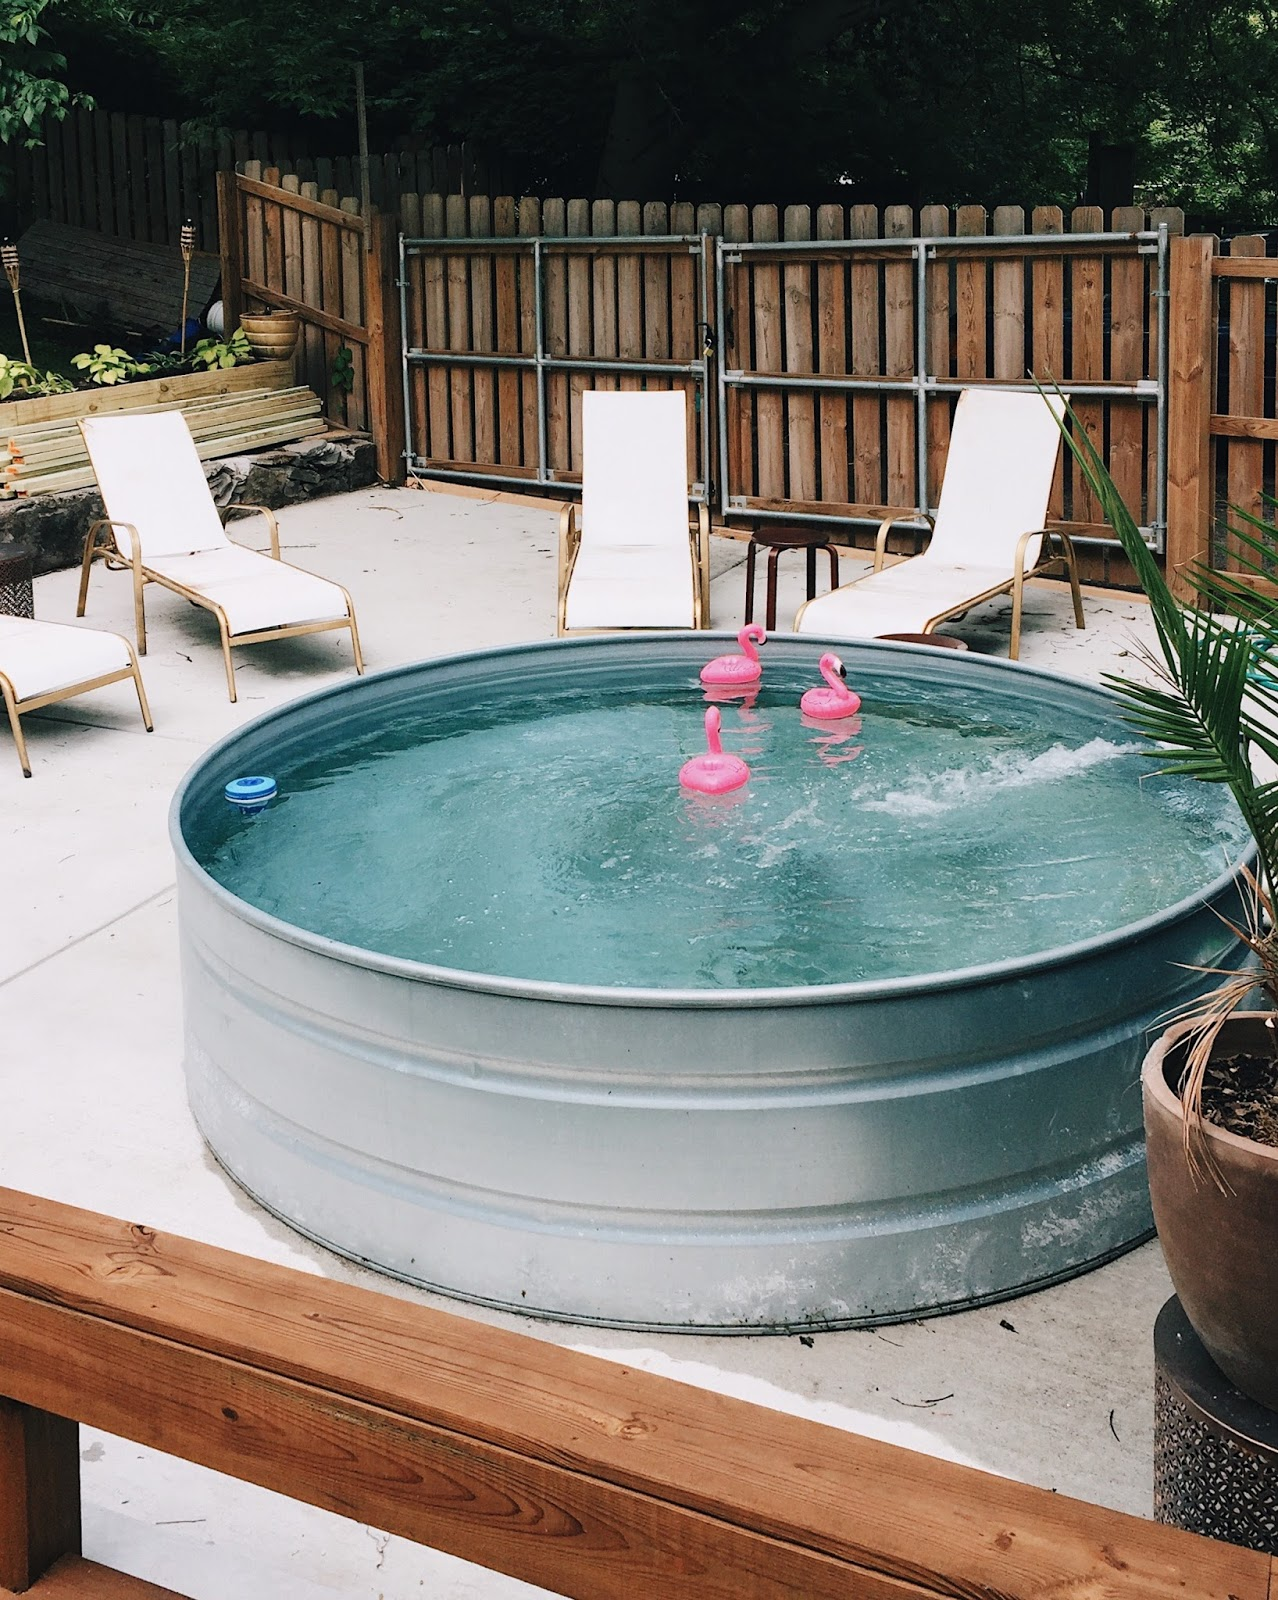 Diy stock tank pool everything you need to know - How to filter a stock tank swimming pool ...